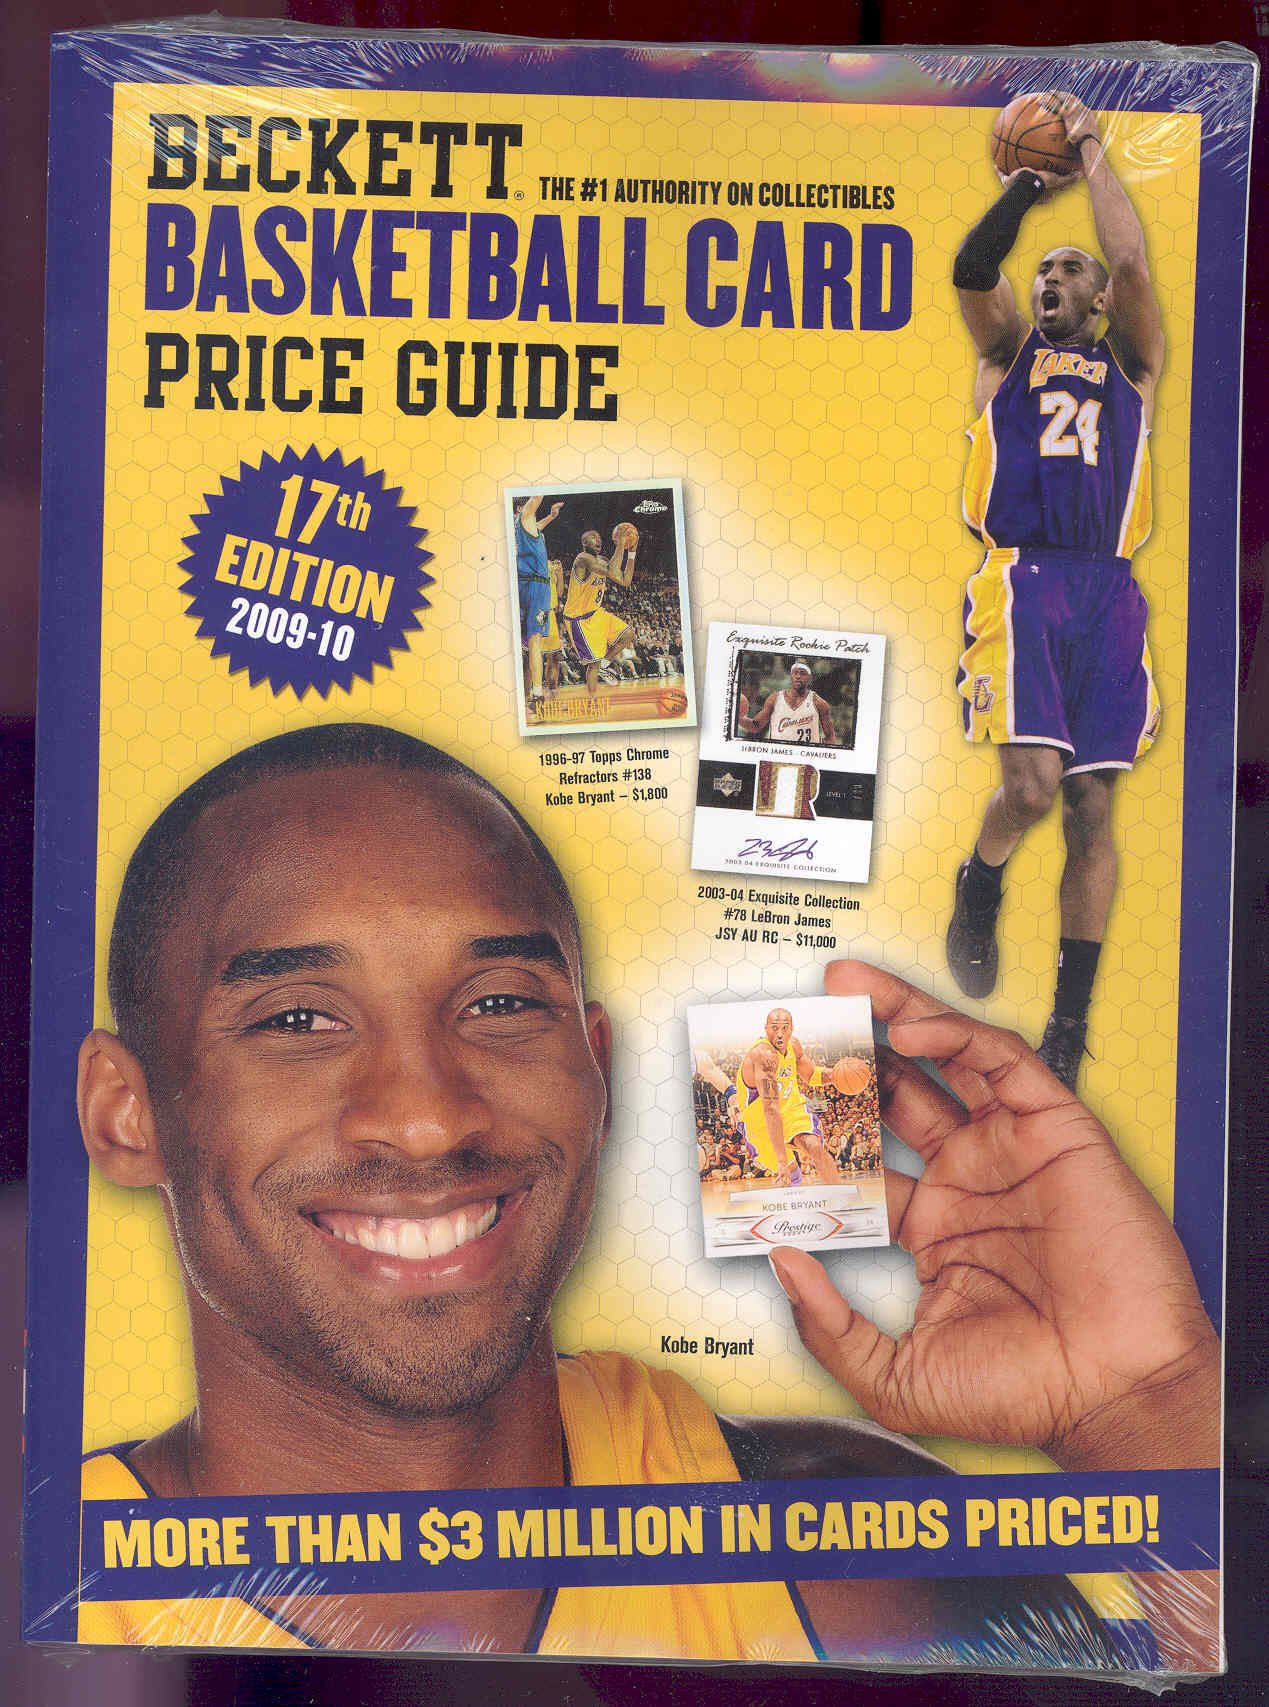 2009-10 17th Edition Basketball Annnual Price Guide Kobe Bryant Cover Price $29.95